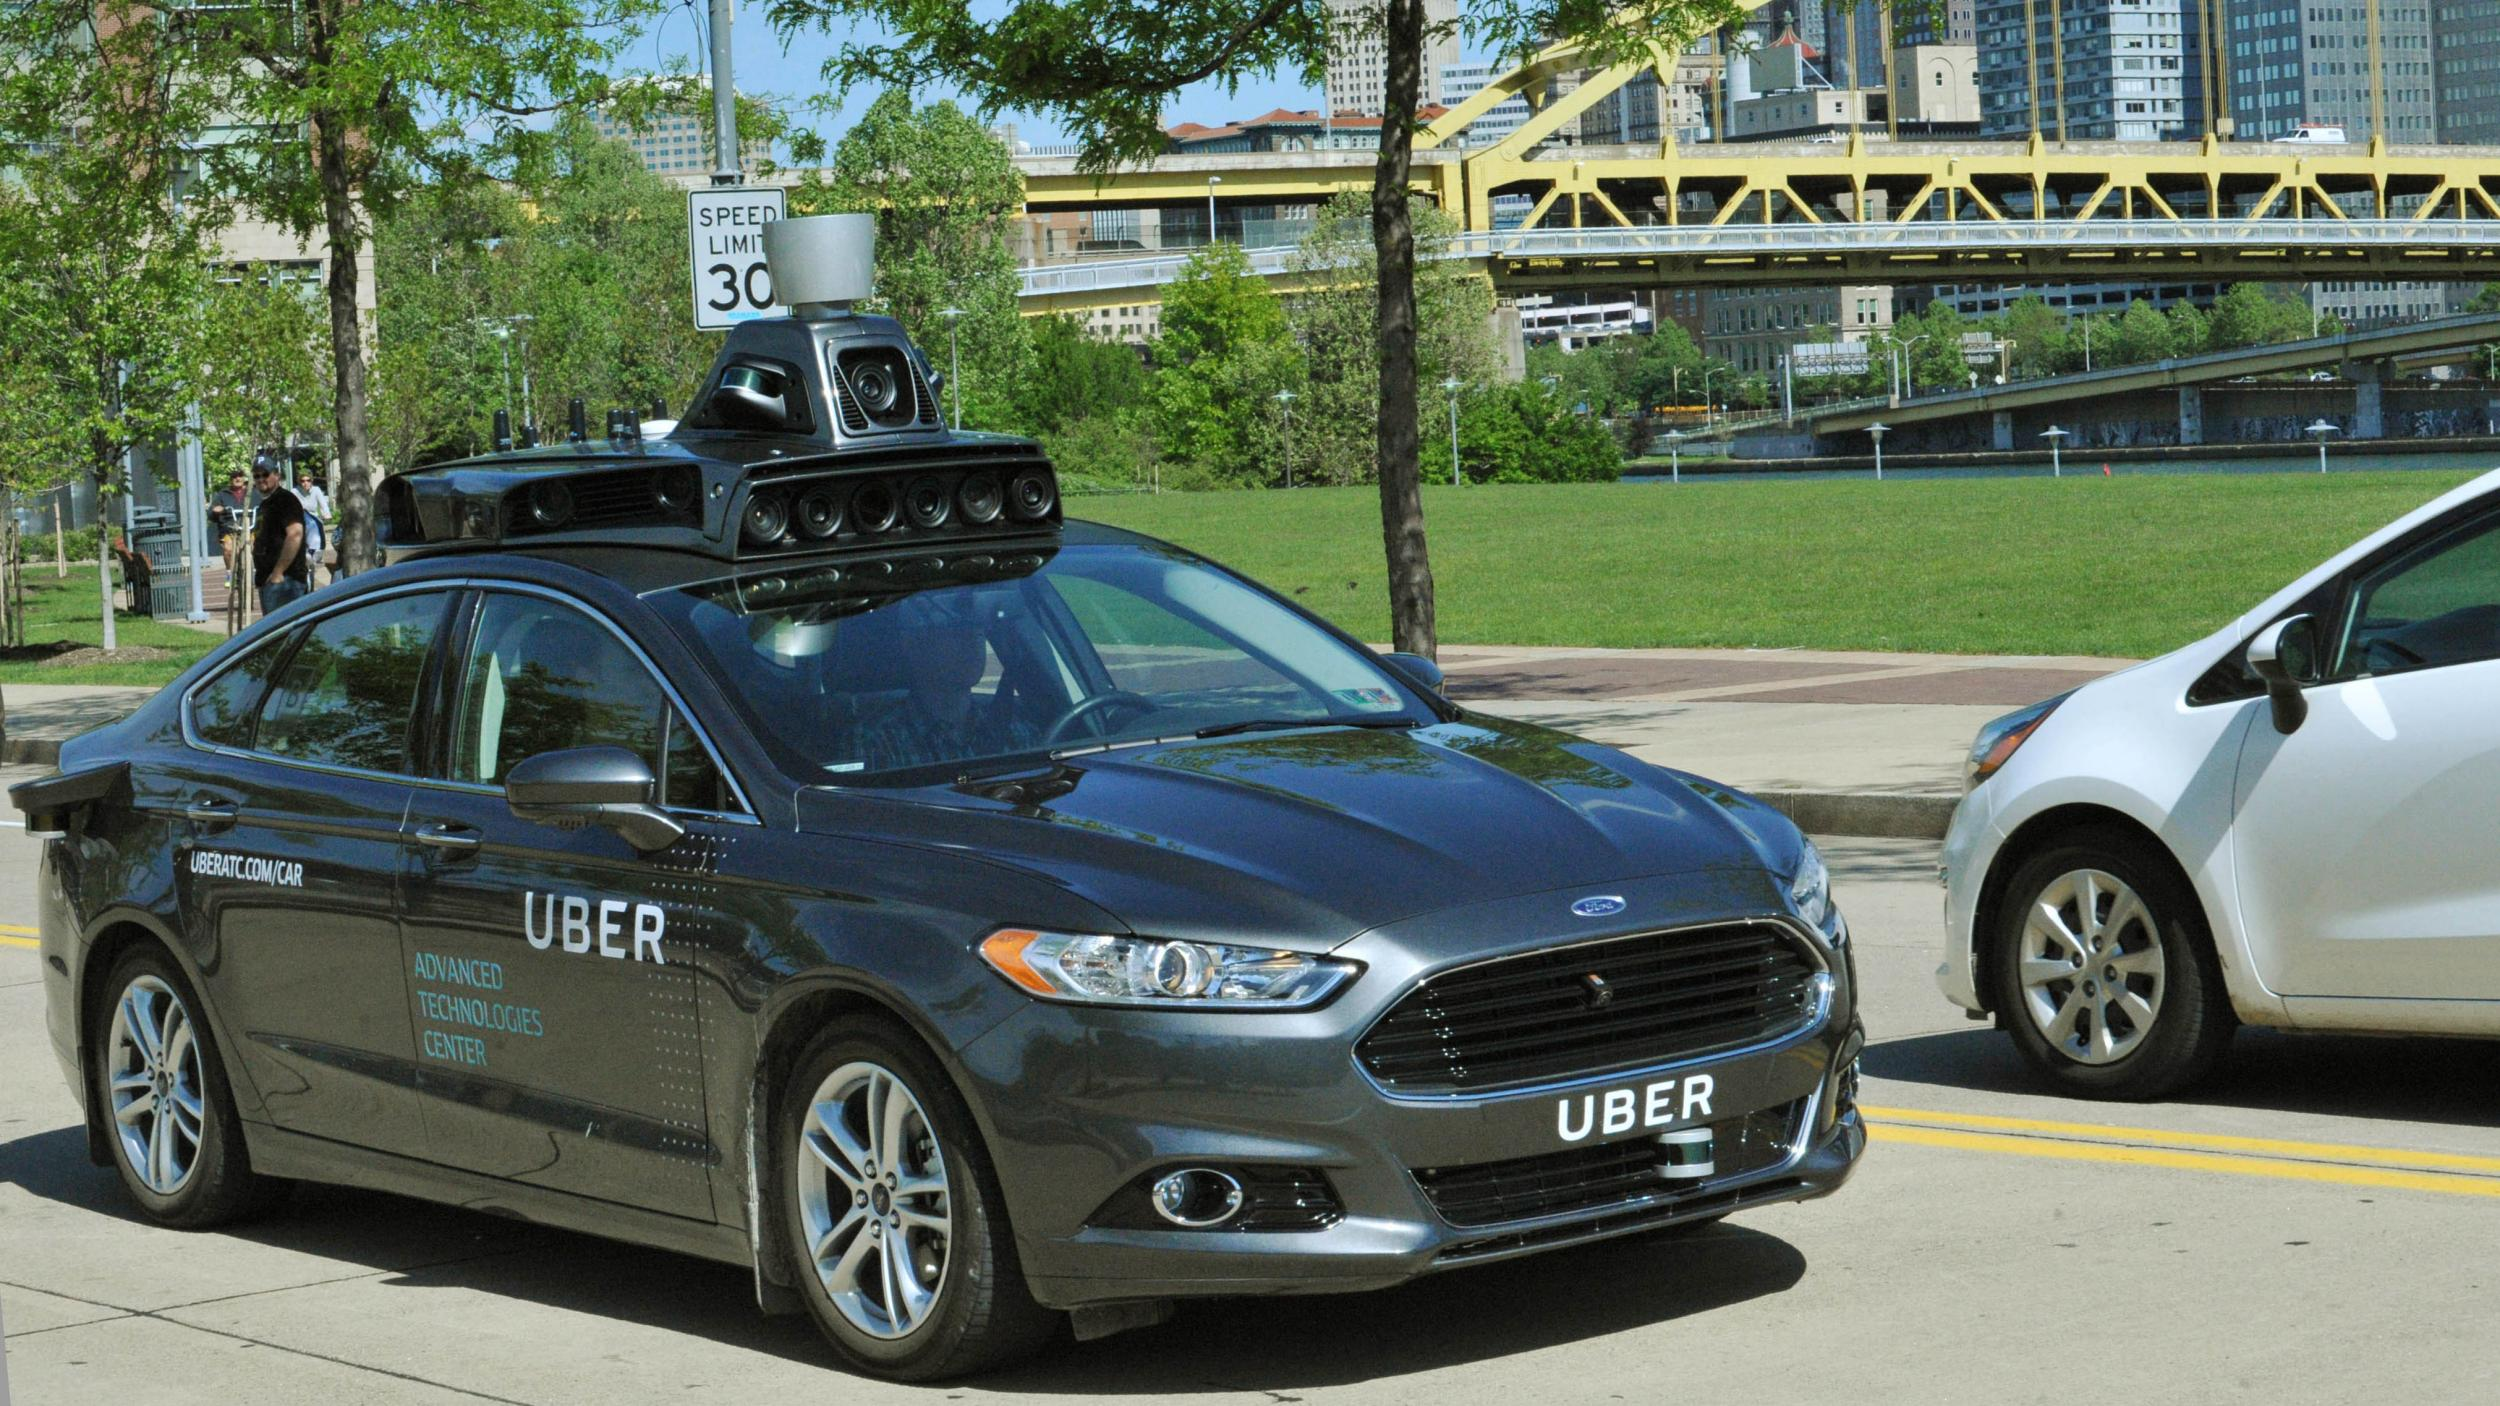 Self-driving Uber cars spotted in Pittsburgh